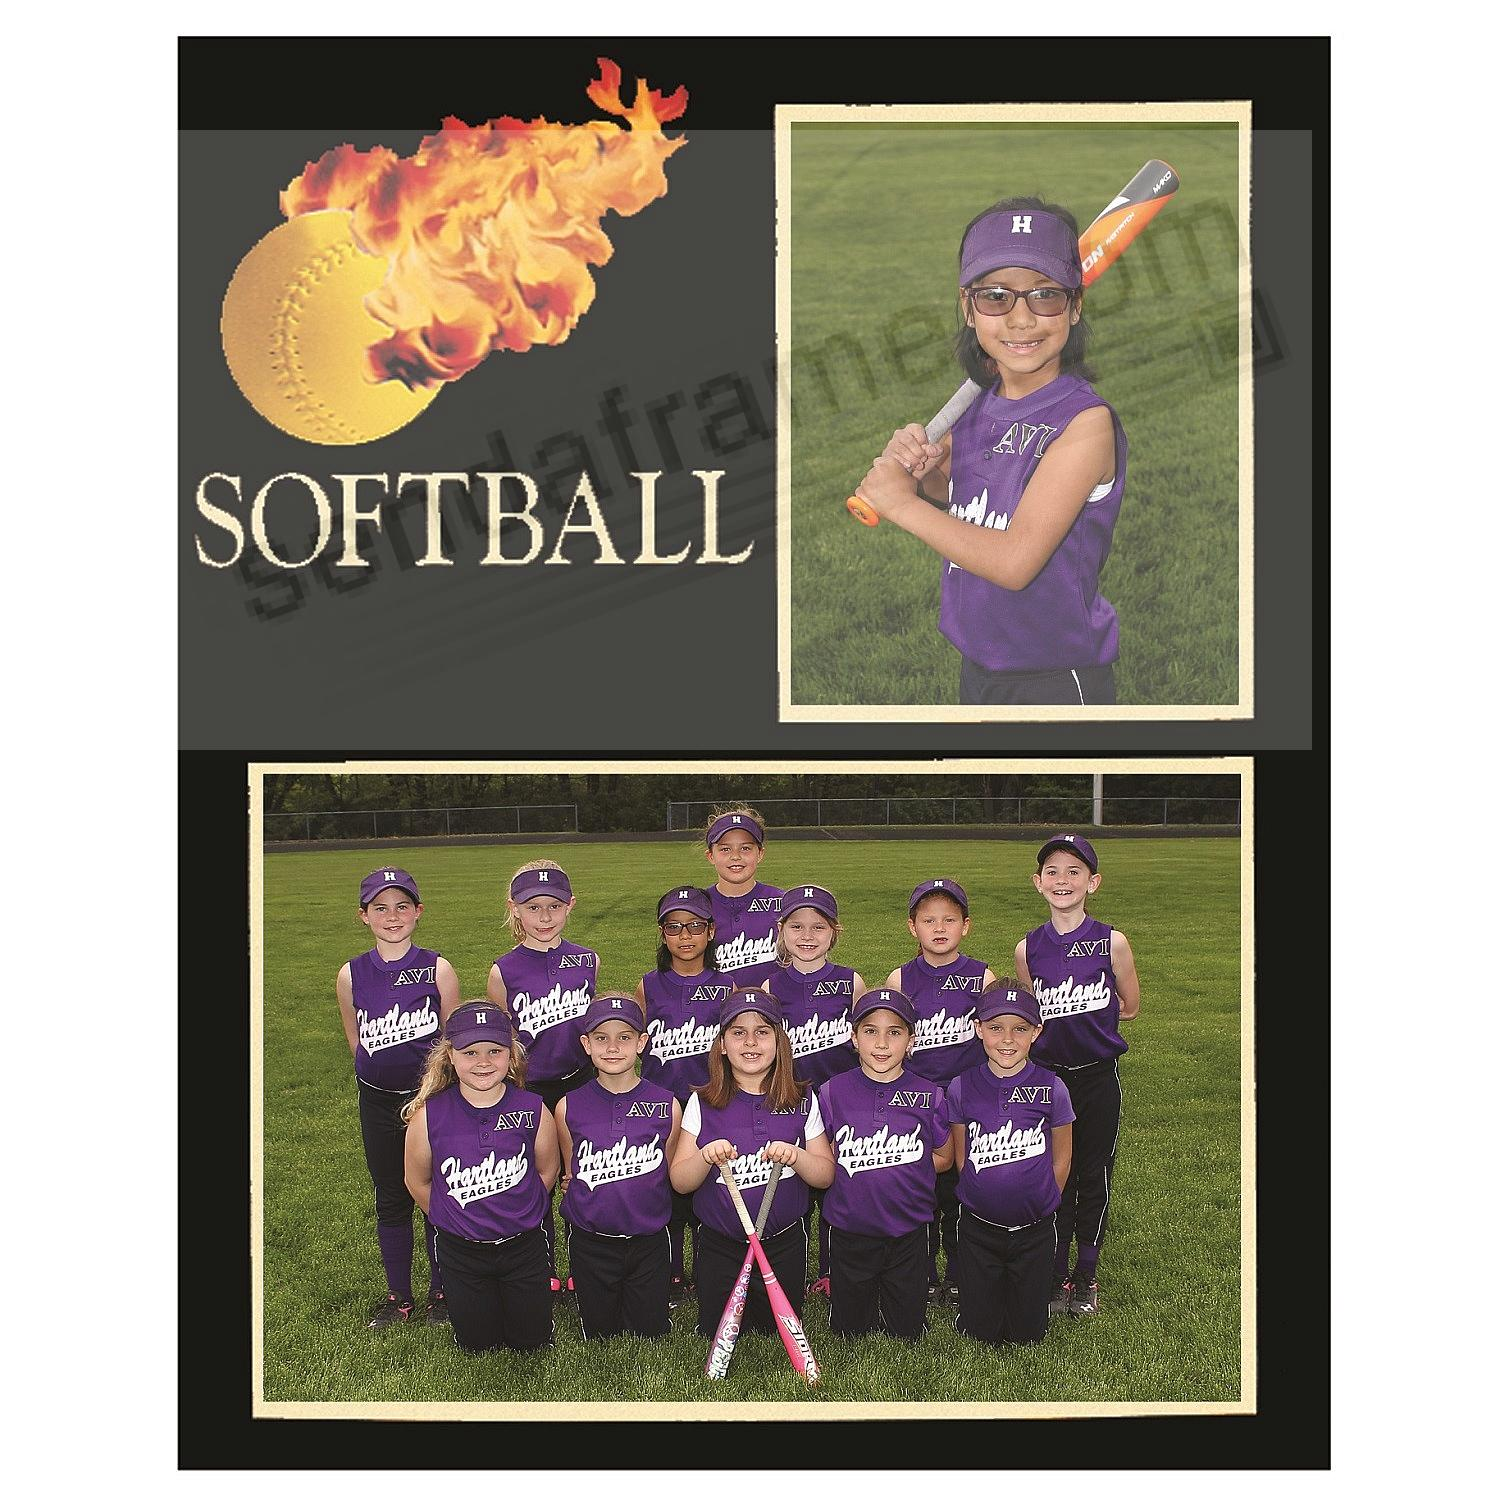 Softball Player/Team 7x5/3½x5 MEMORY MATES cardstock double photo frame (sold in 10's)